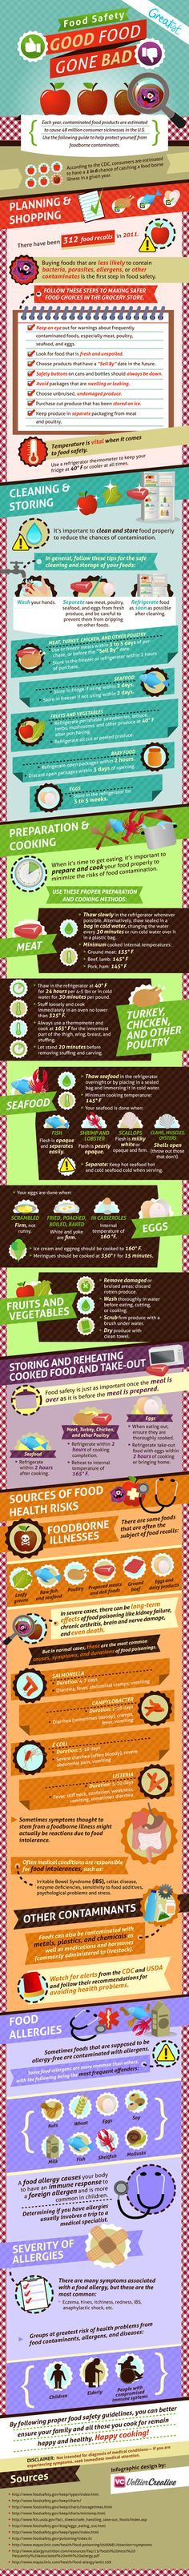 This food safety infographic communicates important food safety information and food safety tips to keep good food from going bad.